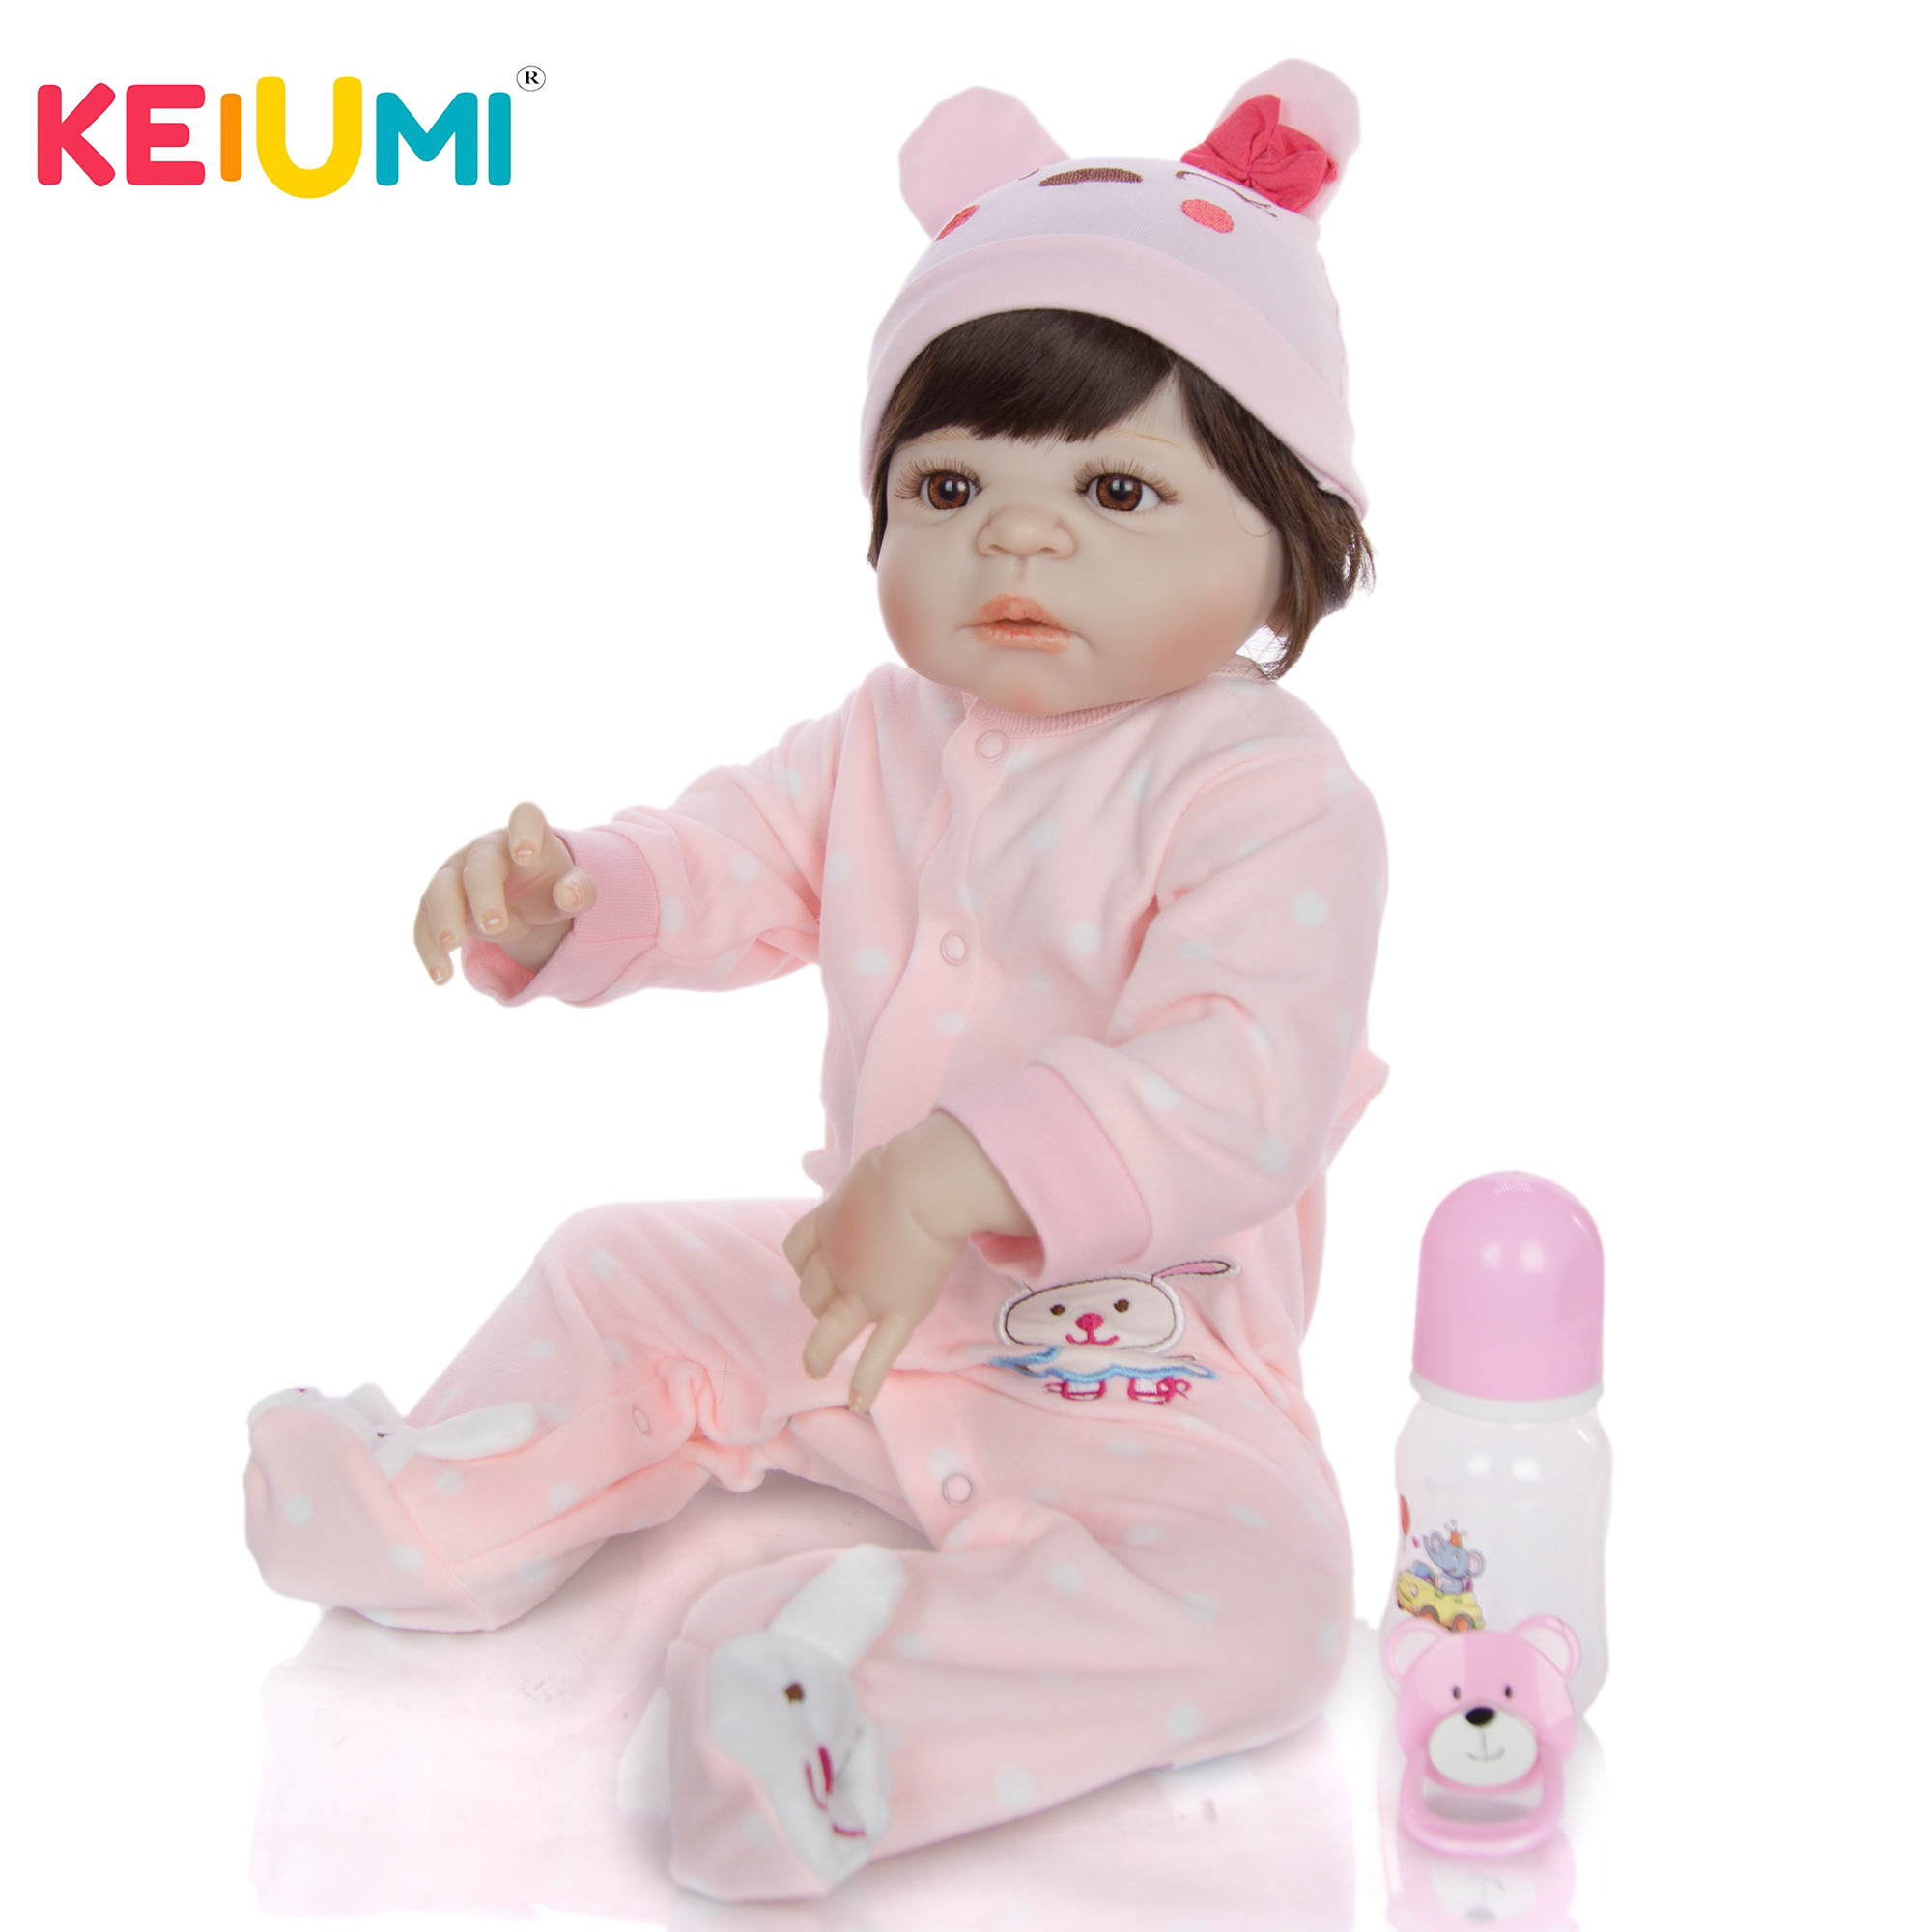 Wholesa 23 57cm Full Silicone Vinyl Body Baby Reborn Real Doll Baby Toys Newborn Dolls For